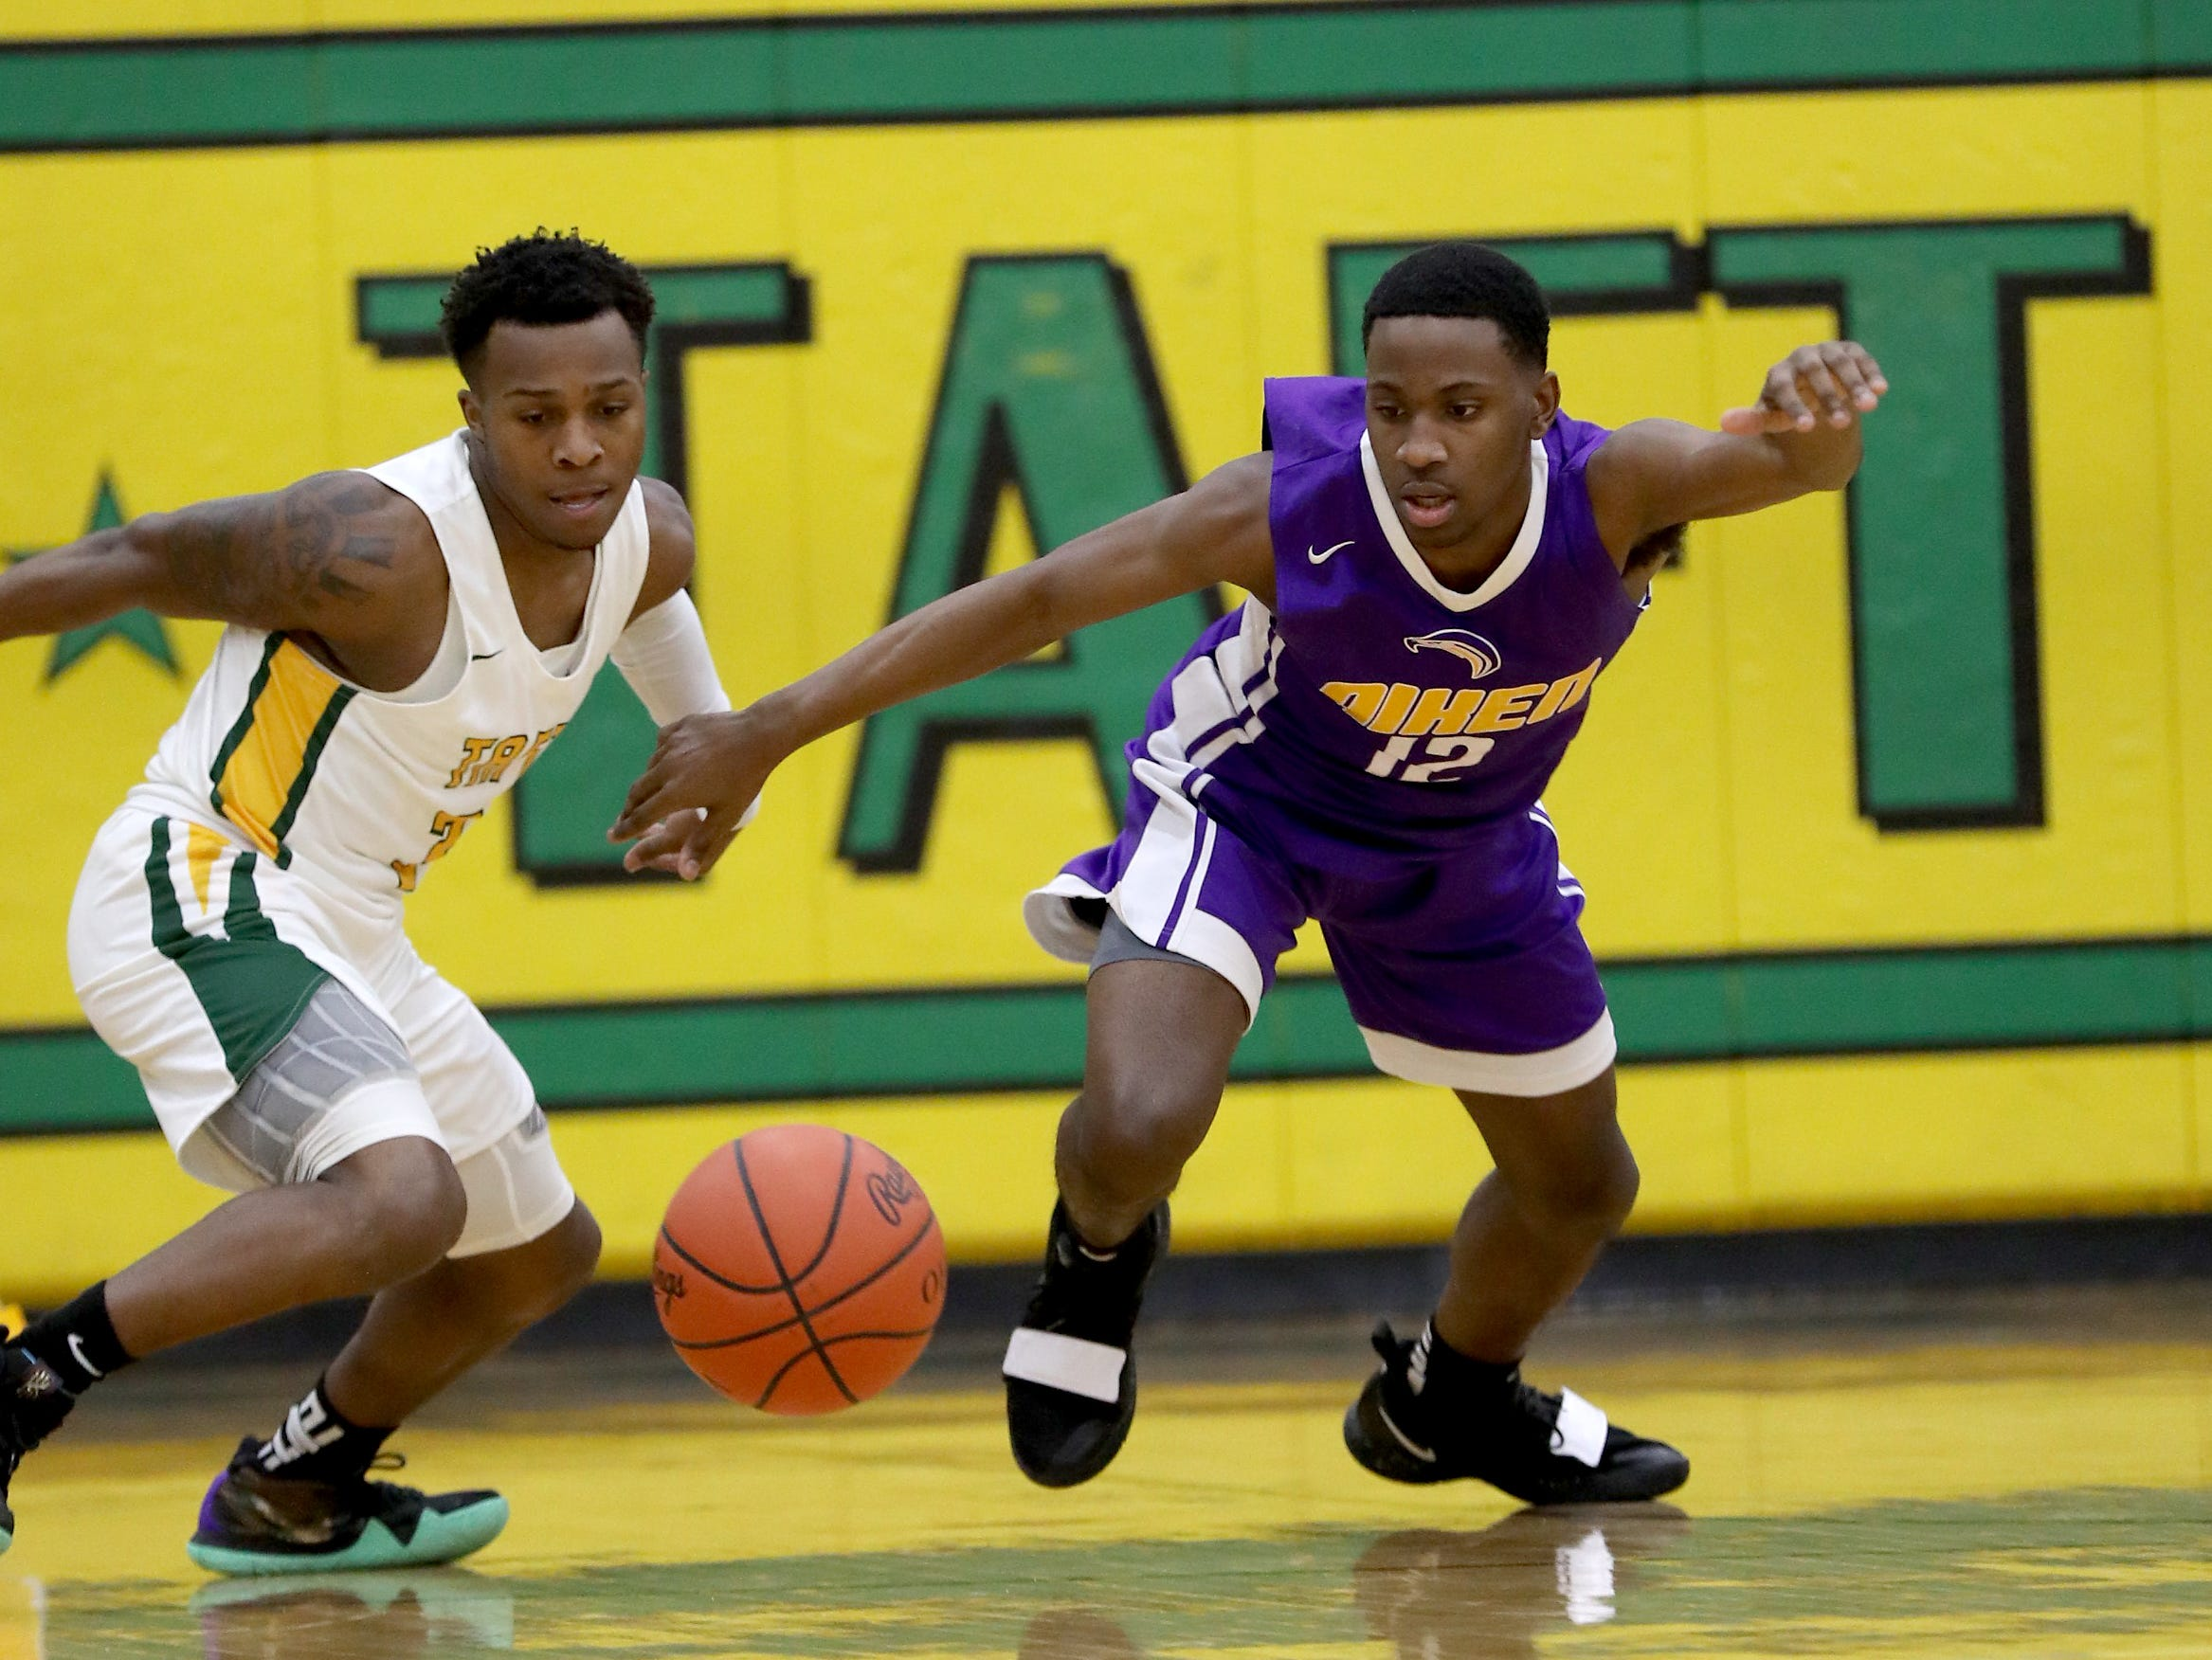 Taft guard Demaro Bradley, left, and Aiken guard Jakada Stone chase a loose ball.